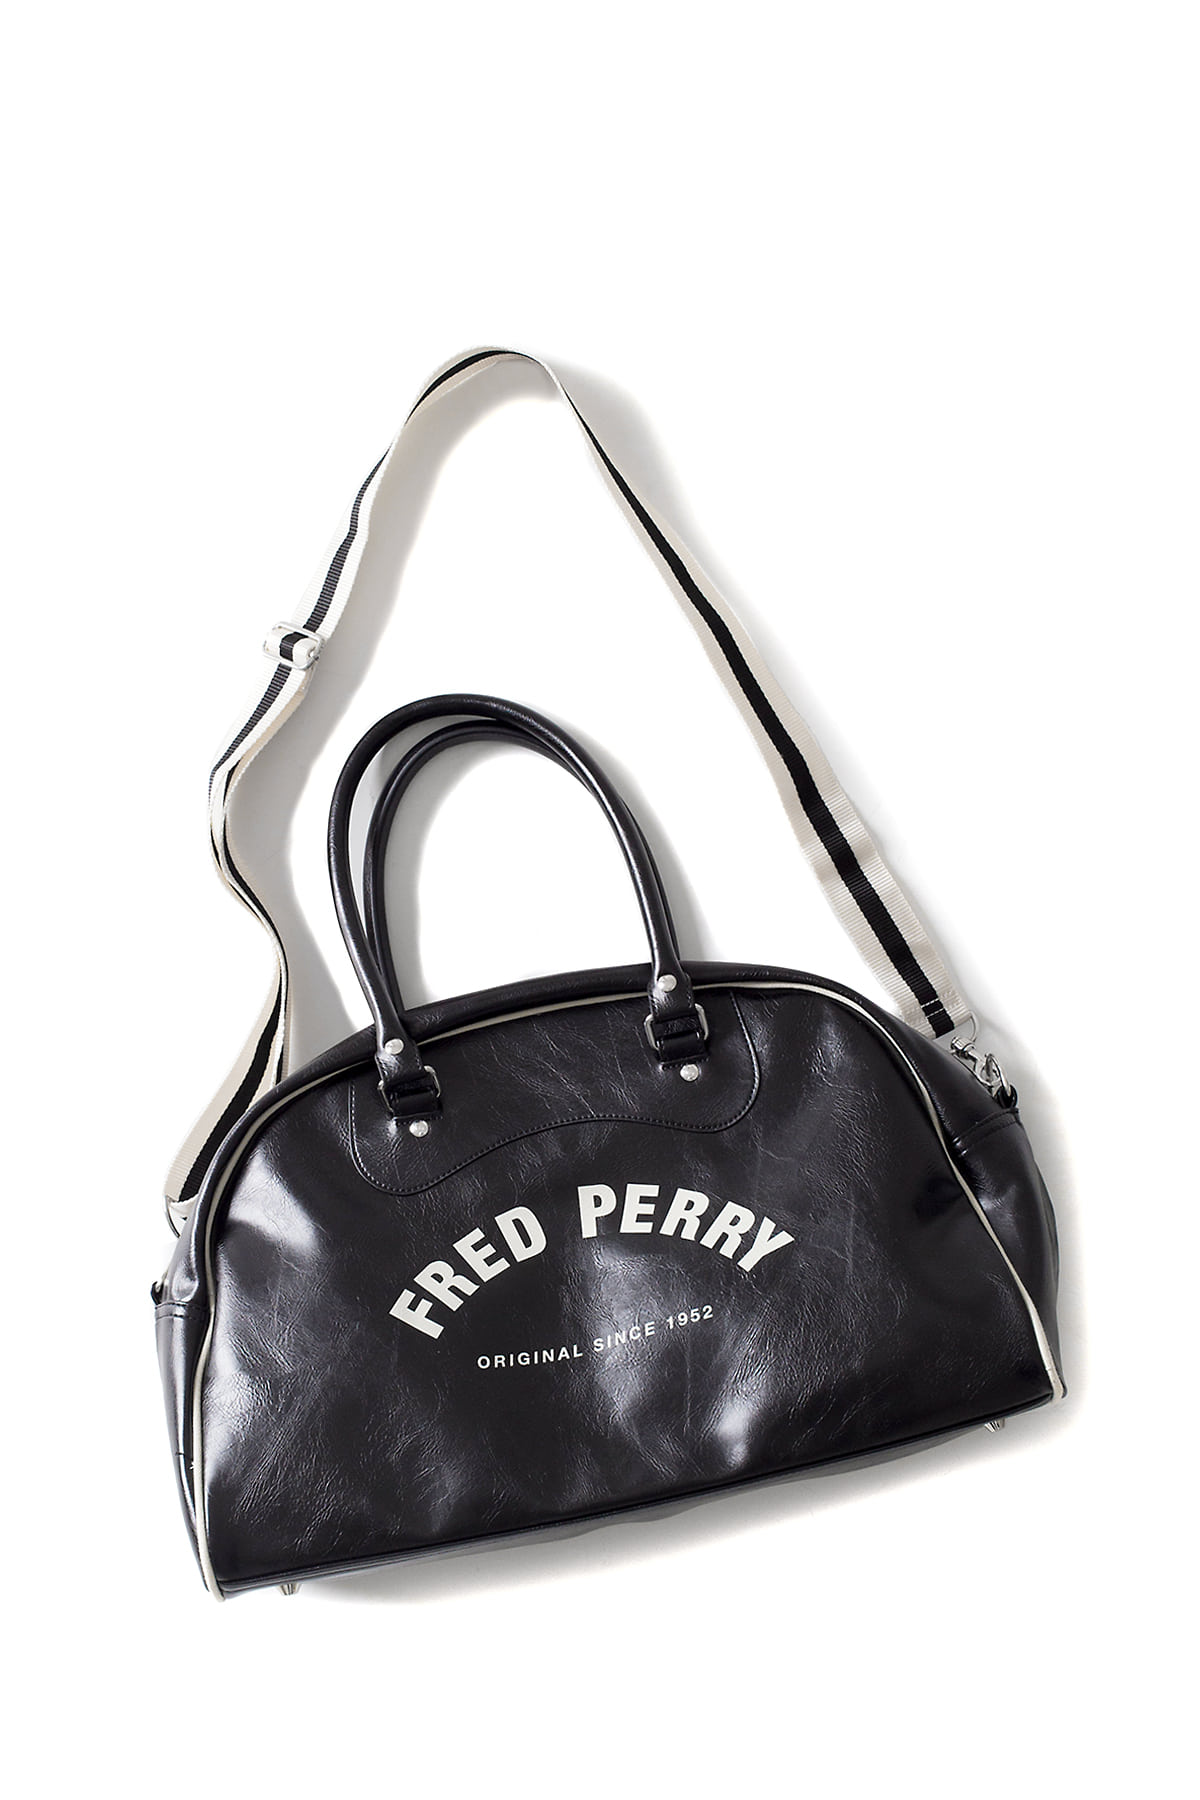 FRED PERRY : Classic Grip Bag (Black / Ecru)